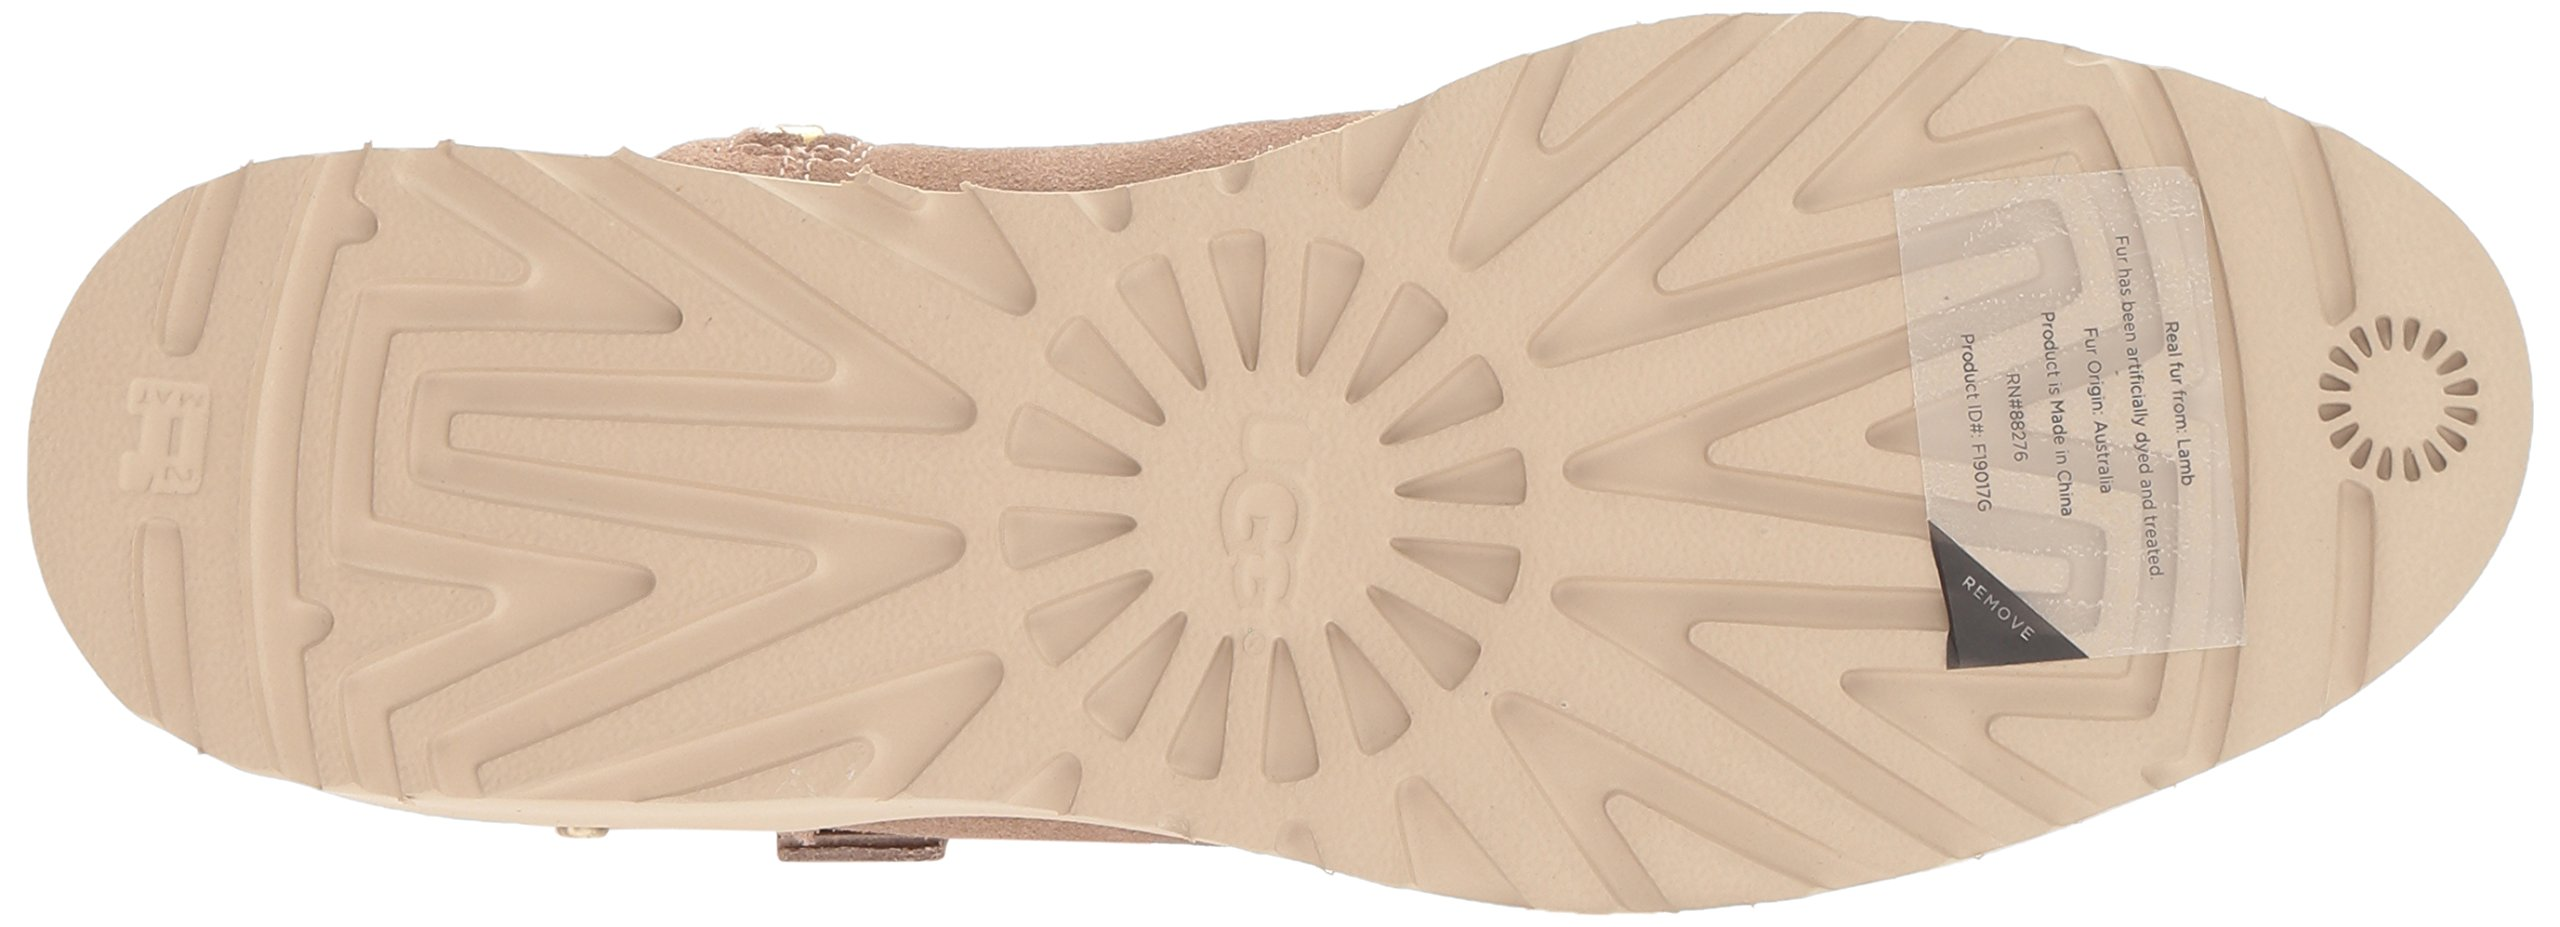 UGG Women's Aysel Winter Boot, Fawn, 7.5 M US by UGG (Image #3)